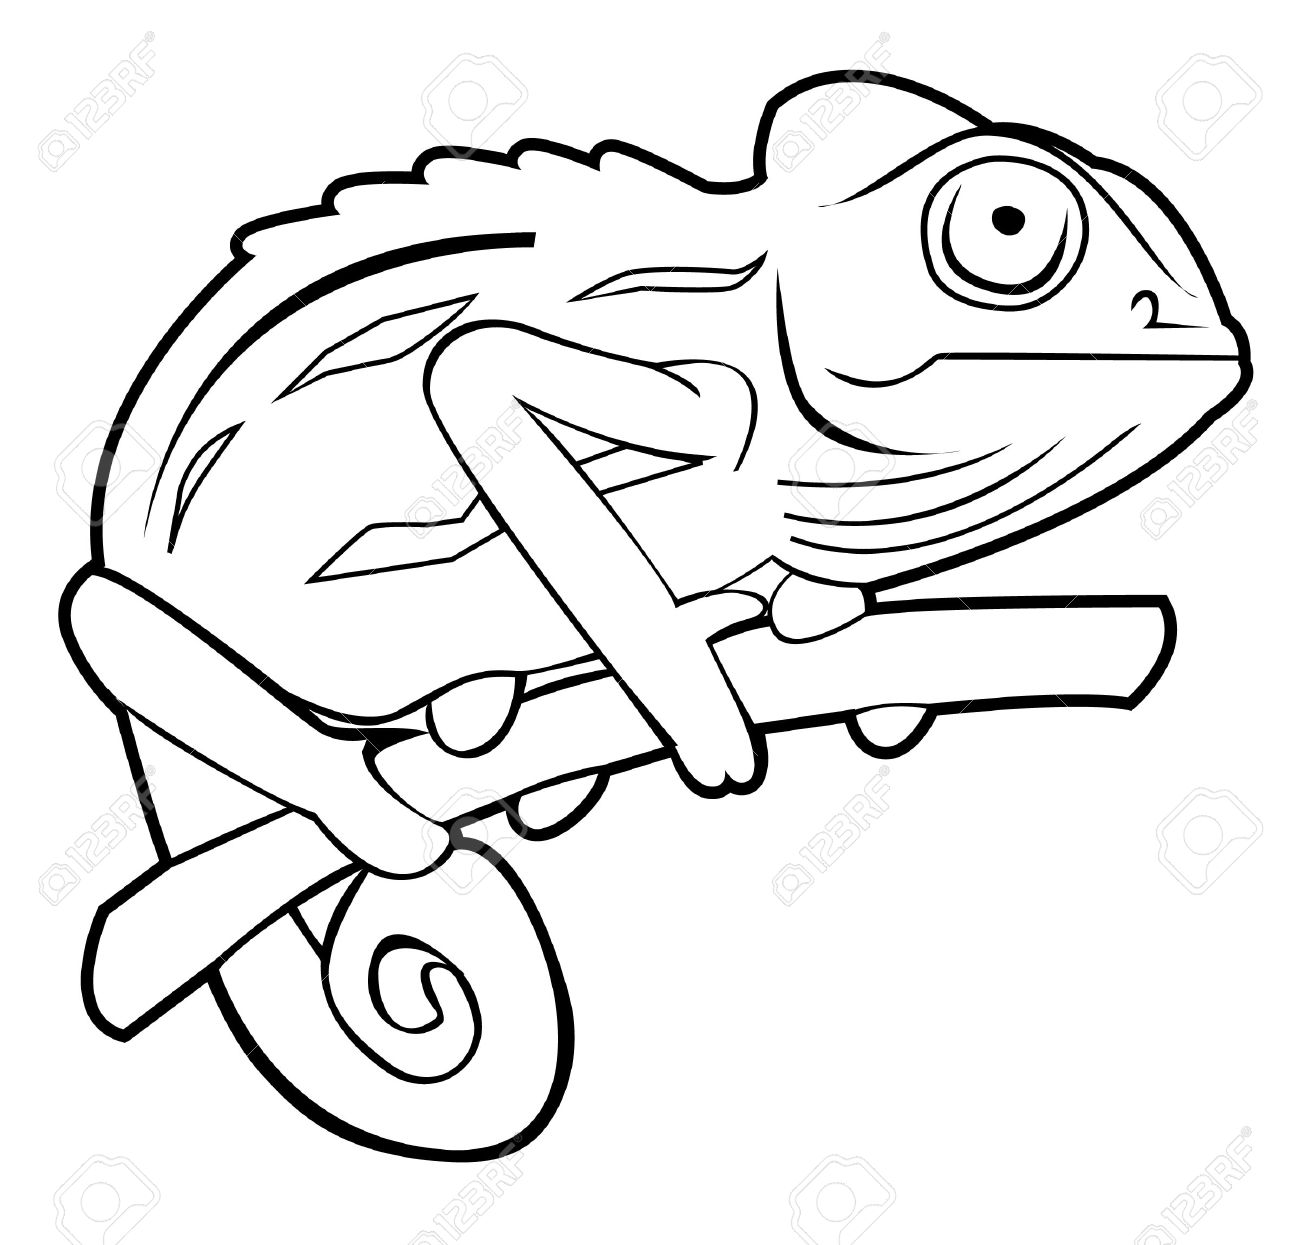 chameleon royalty free cliparts vectors and stock illustration